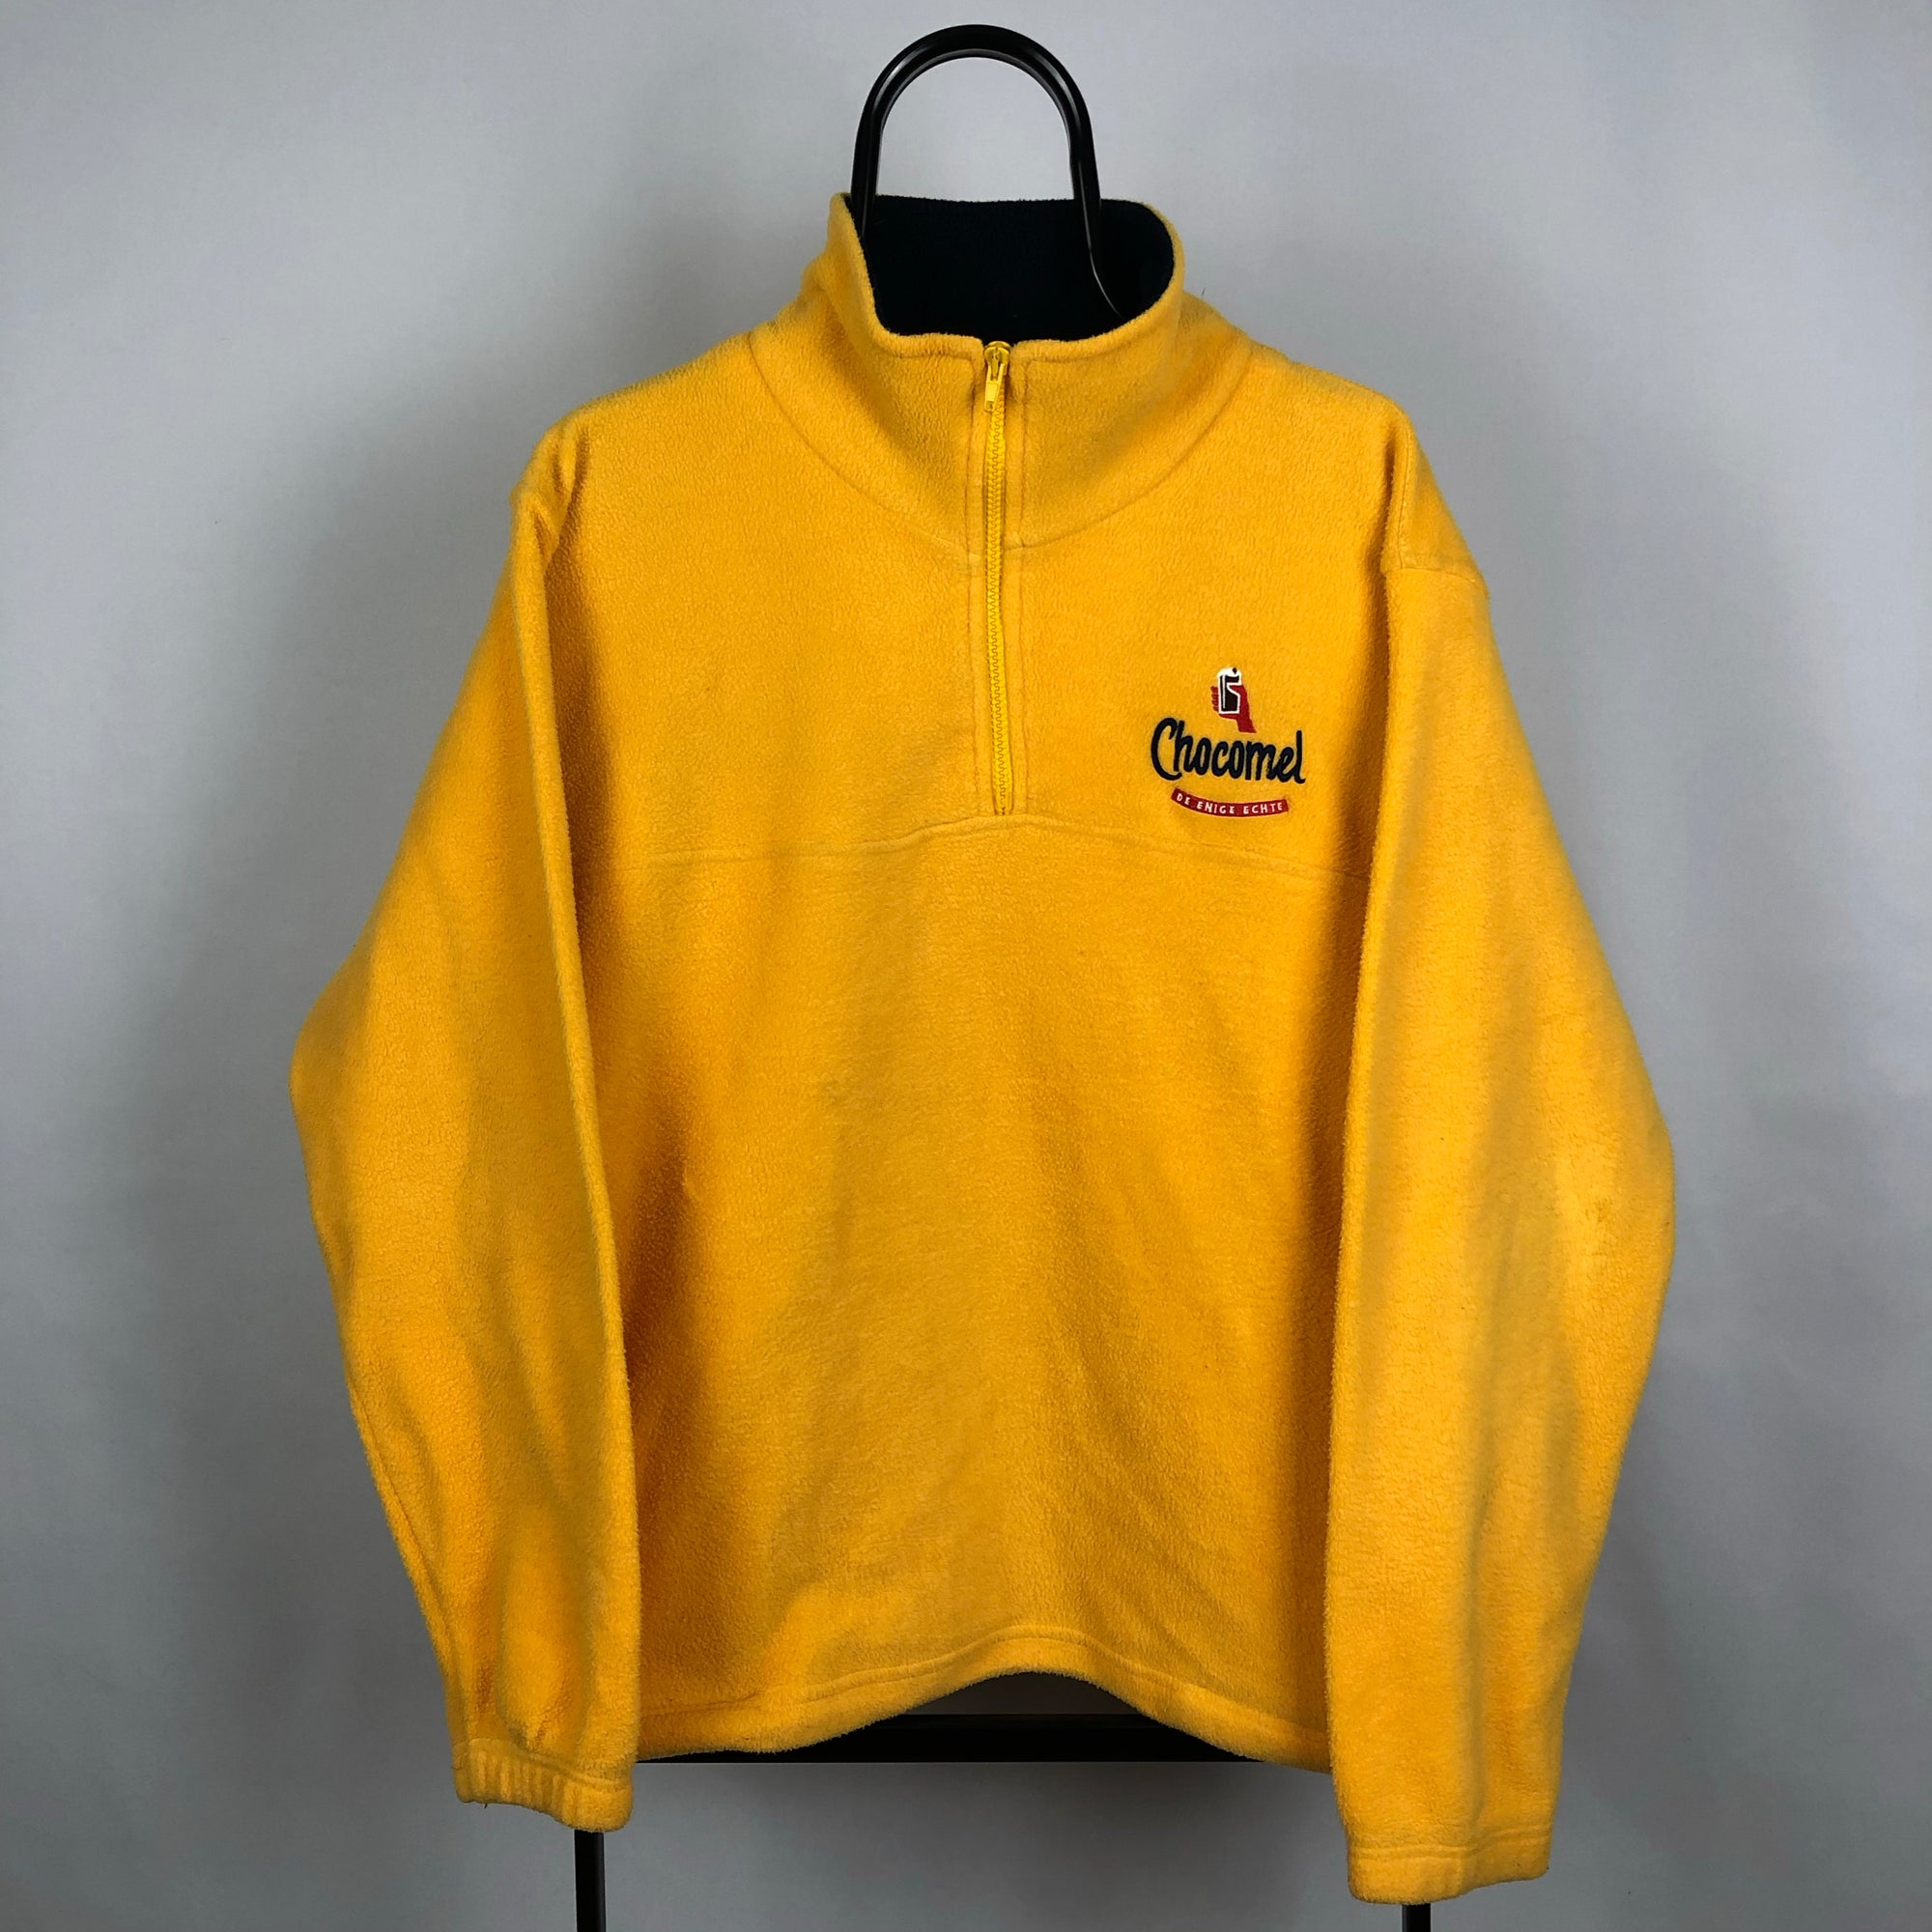 Vintage Chocomel Fleece - Men's Medium/Women's Large